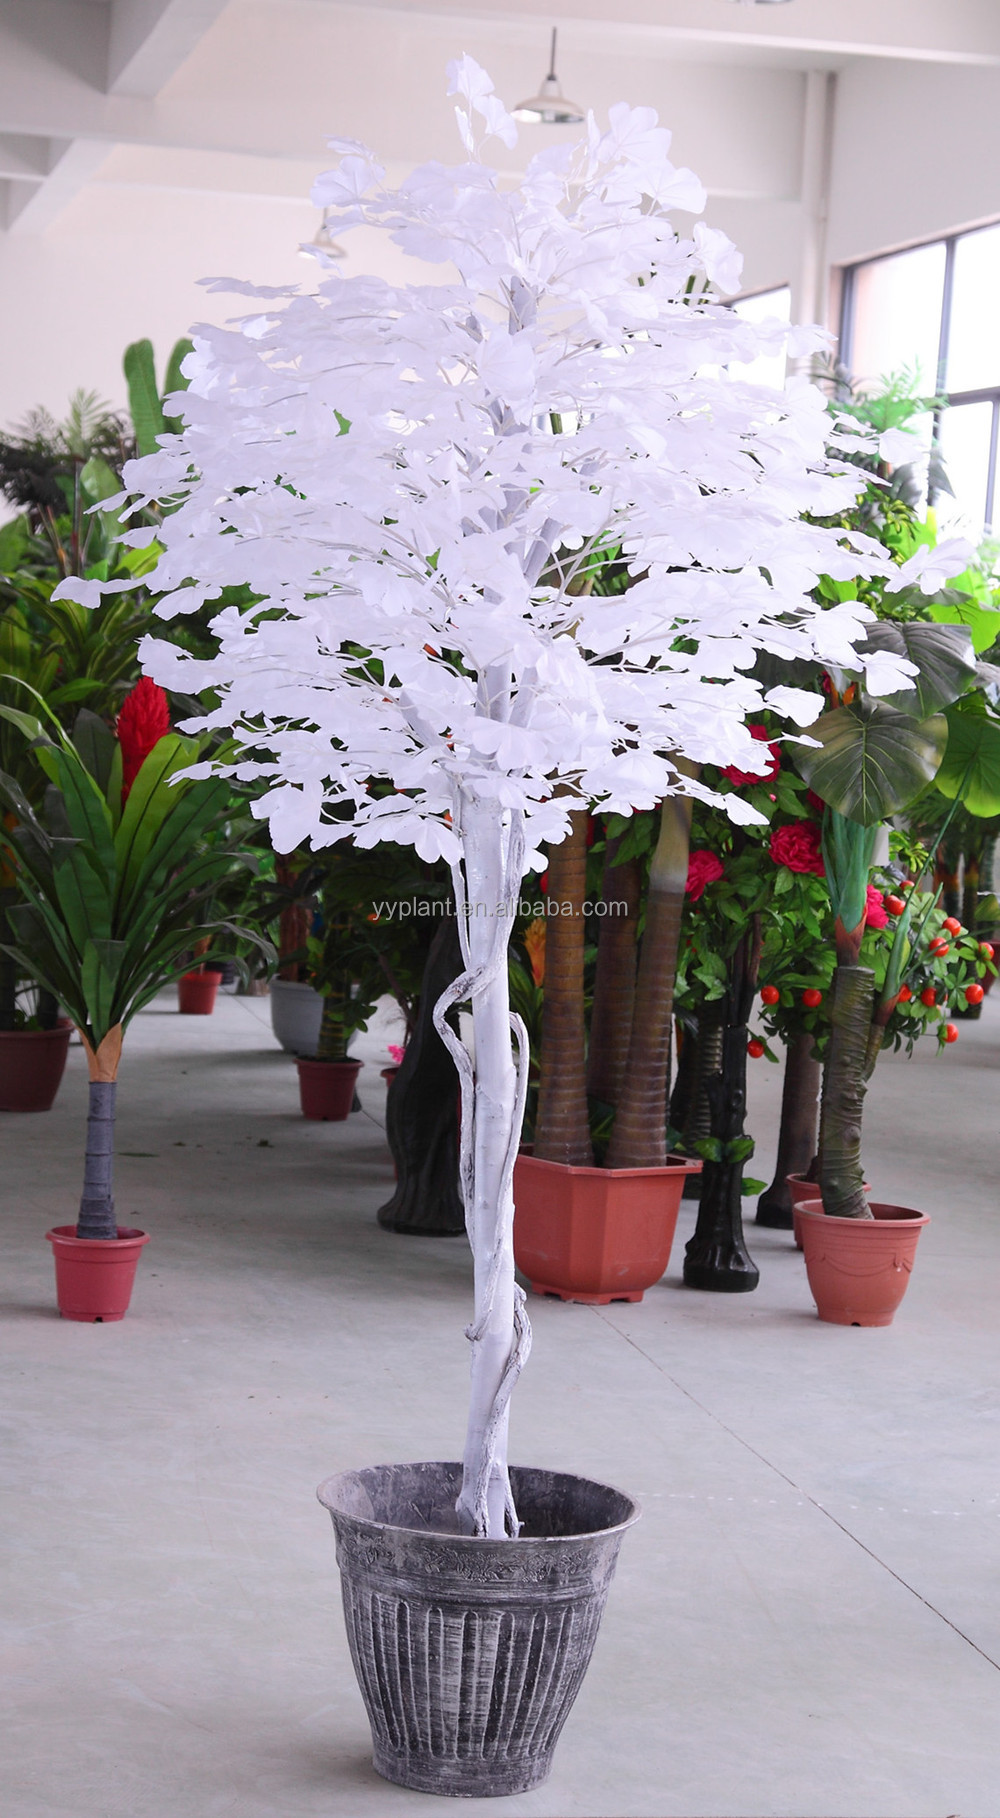 Factory Supply Wholesale Artificial Ginkgo Leaf, Decorative White Ginkgo Branch